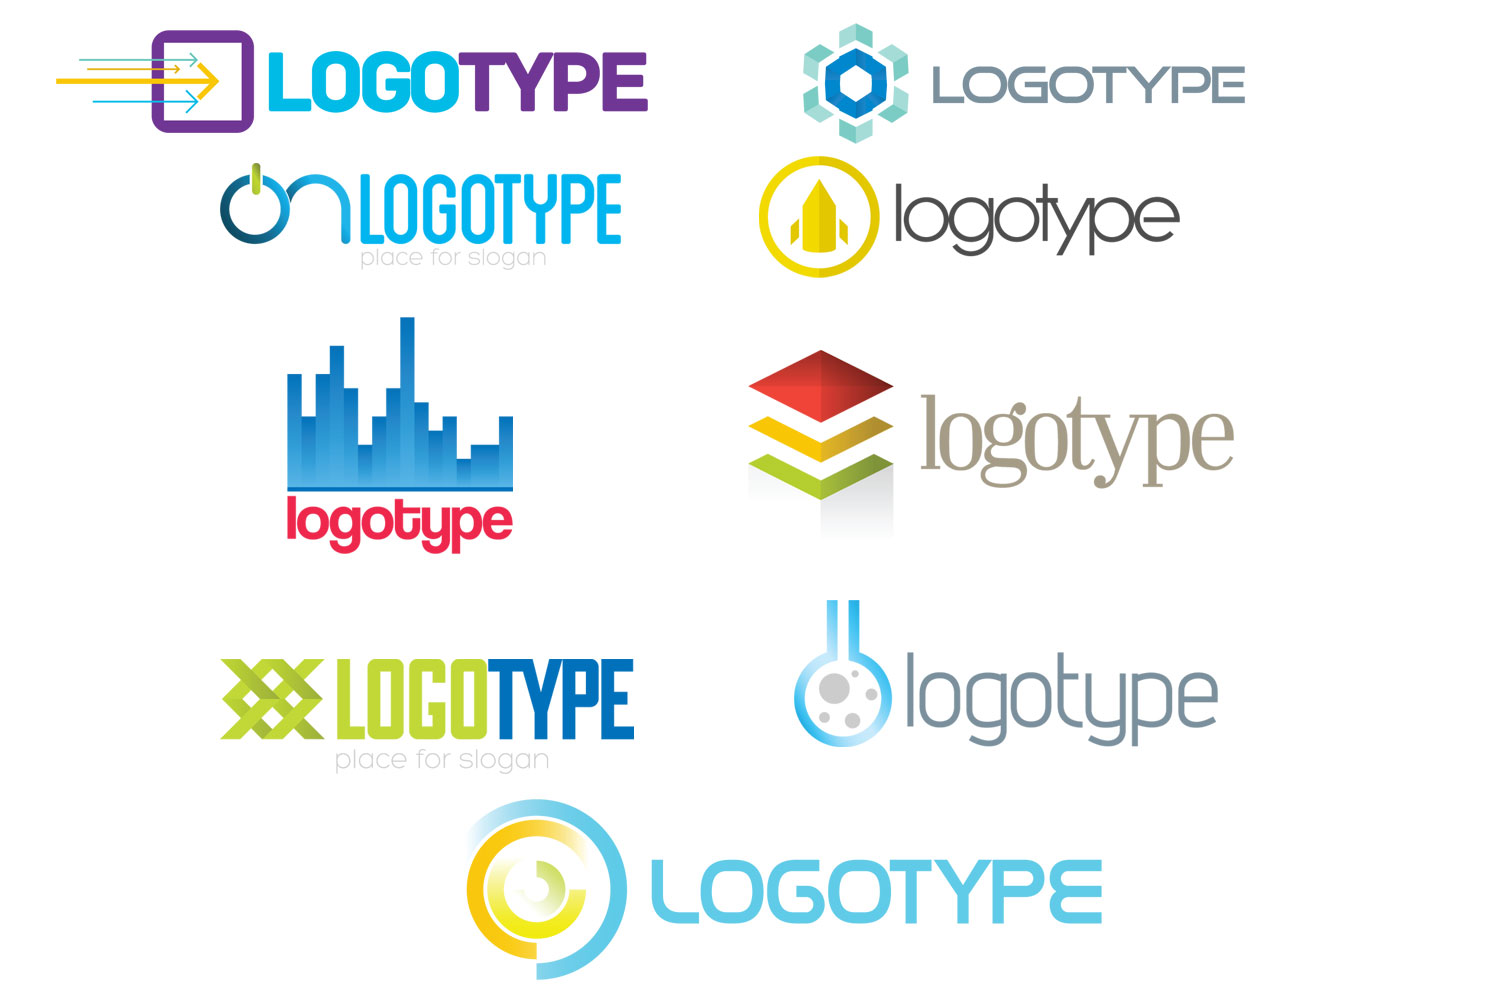 Logo templates in PSD format for Photoshop